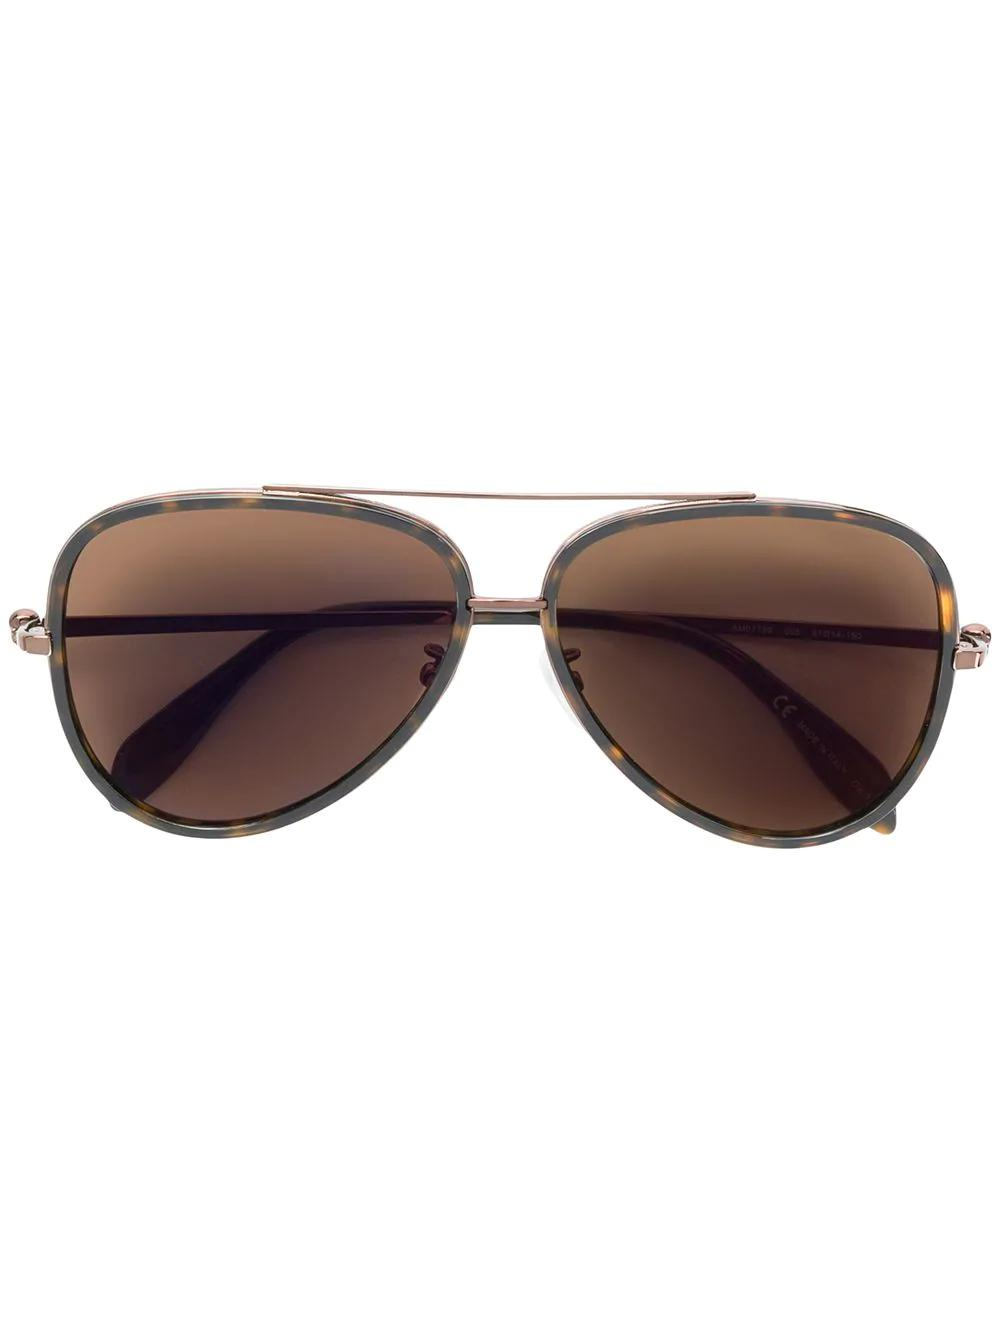 bb34c86c6b0 Alexander Mcqueen Eyewear Aviator Sunglasses - Brown